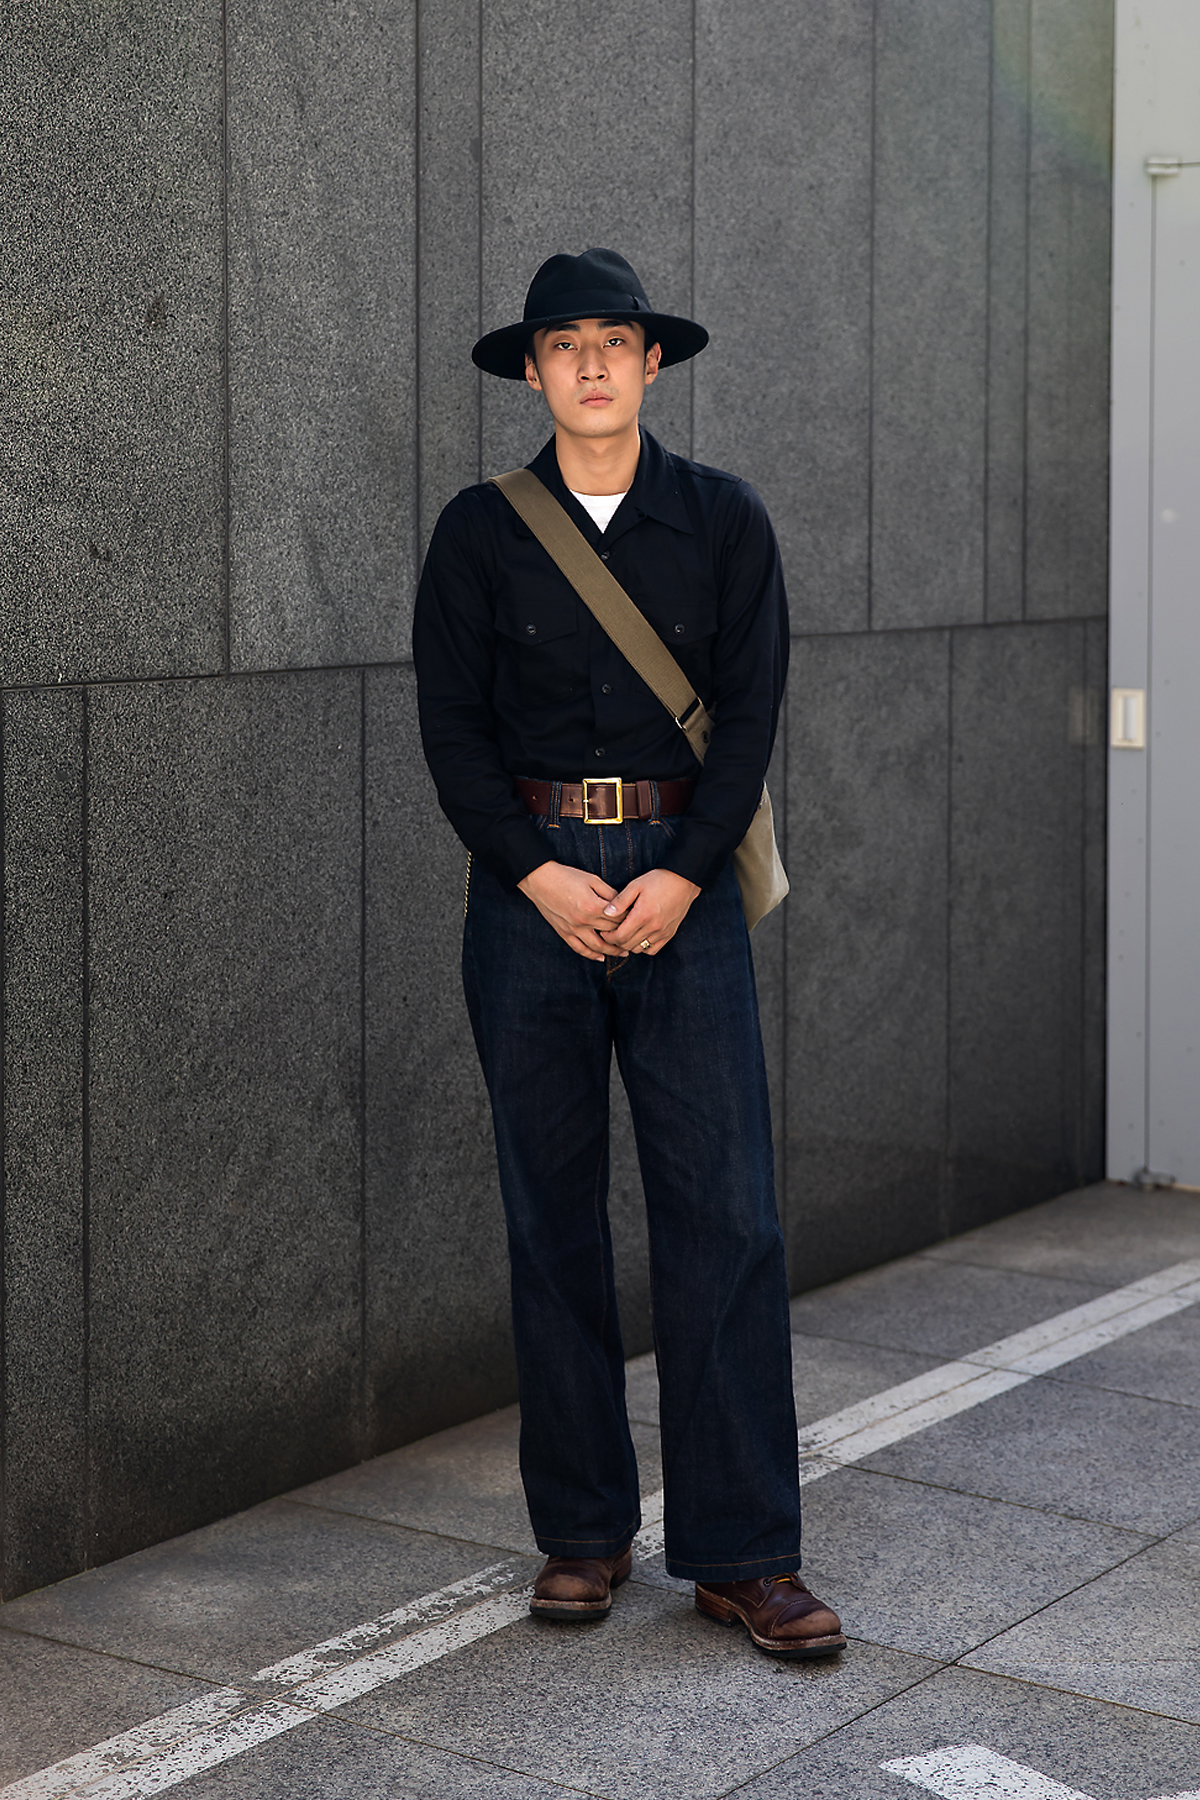 Kim Doum, Street Fashion 2017 in Seoul.jpg